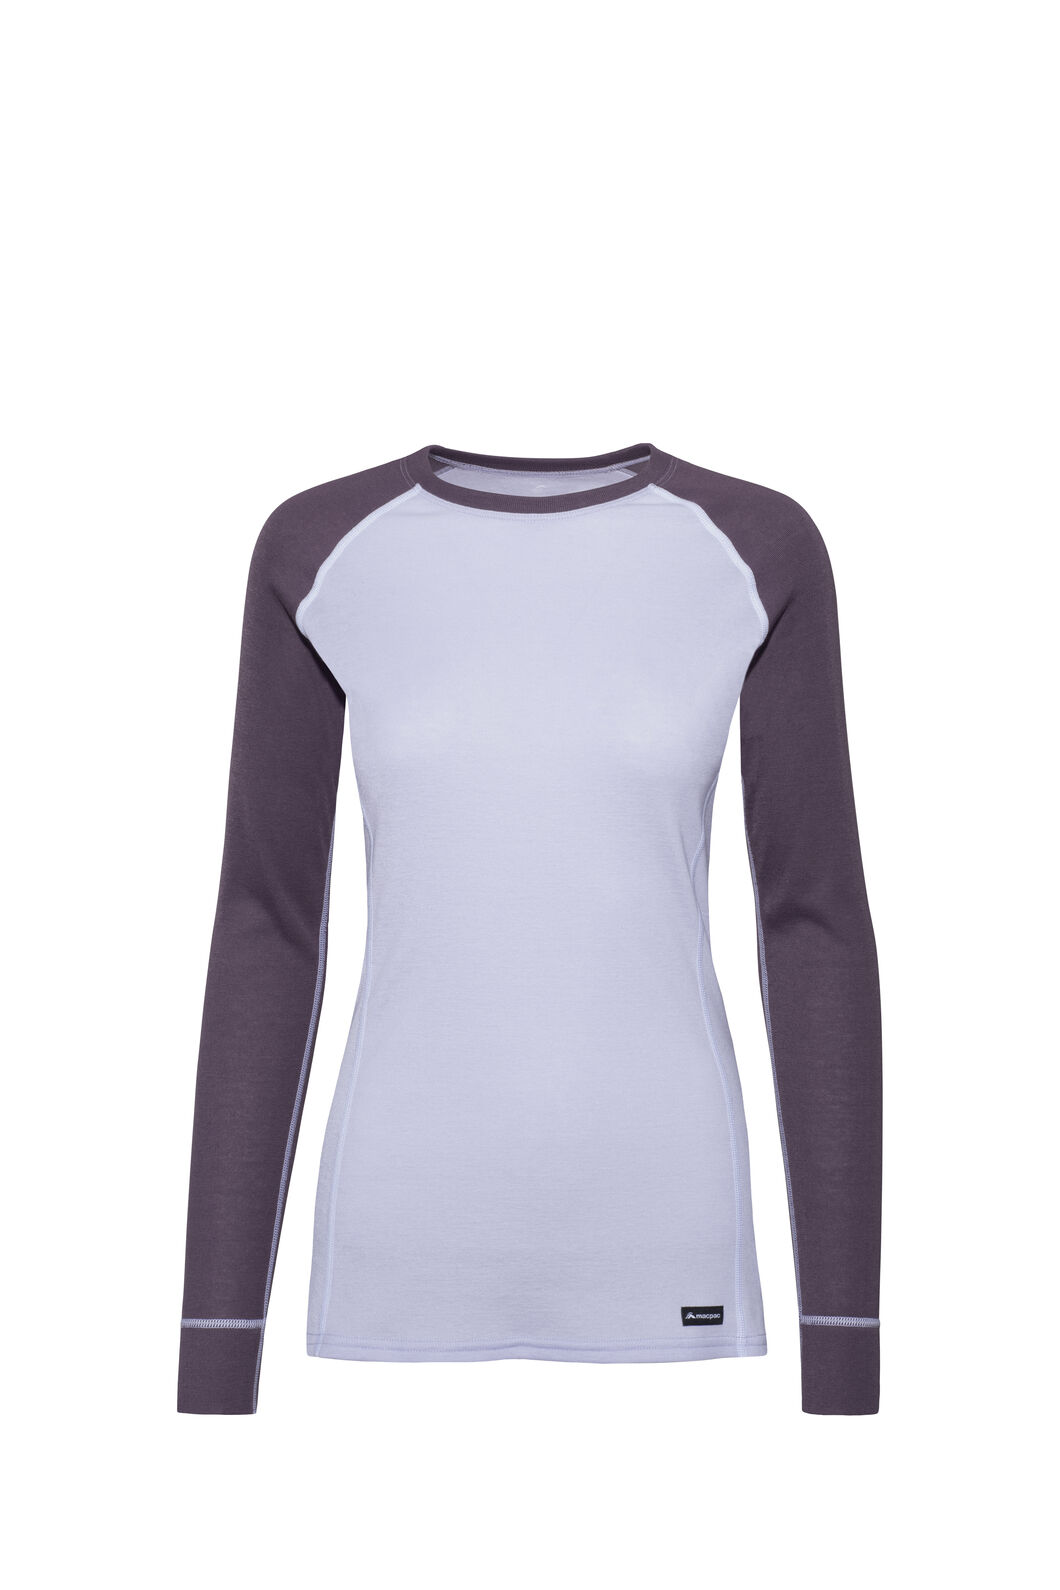 Macpac Geothermal Long Sleeve Top — Women's, Vintage Violet/Purple Heather, hi-res